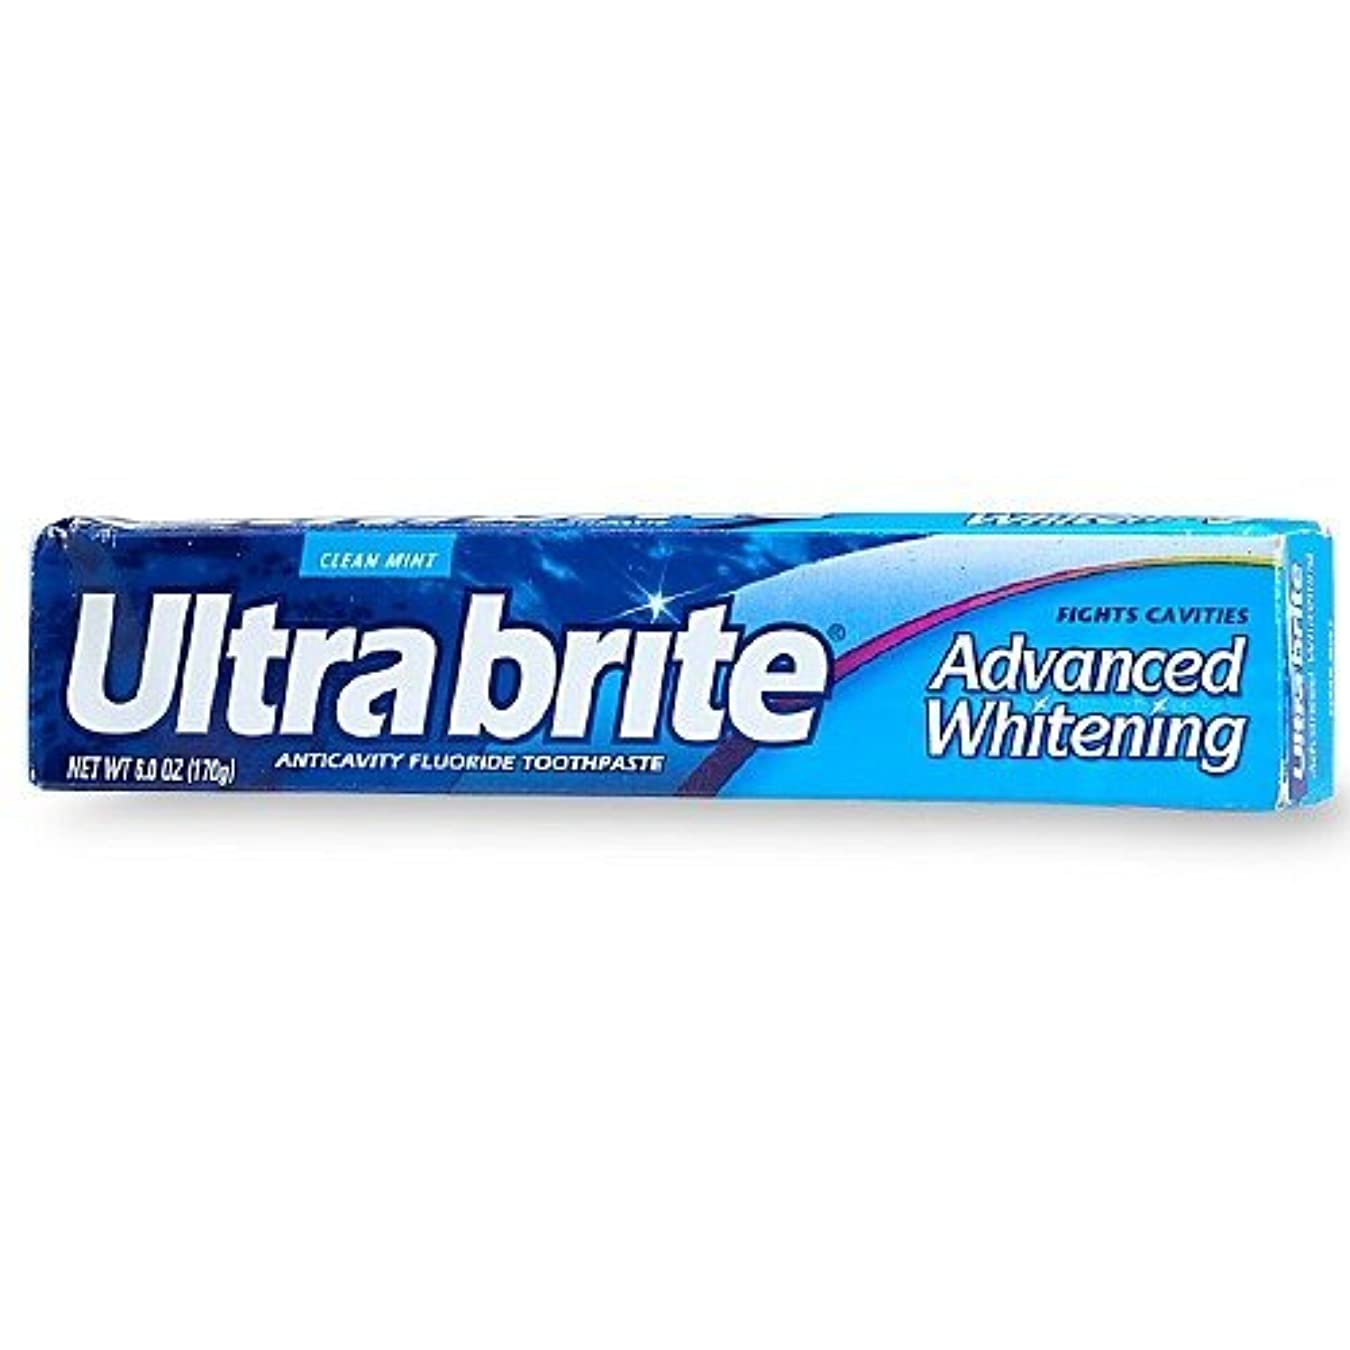 障害者ホーム下手海外直送品Colgate Colgate Ultra Brite Advanced Whitening Fluoride Toothpaste, 6 oz (Pack of 3)